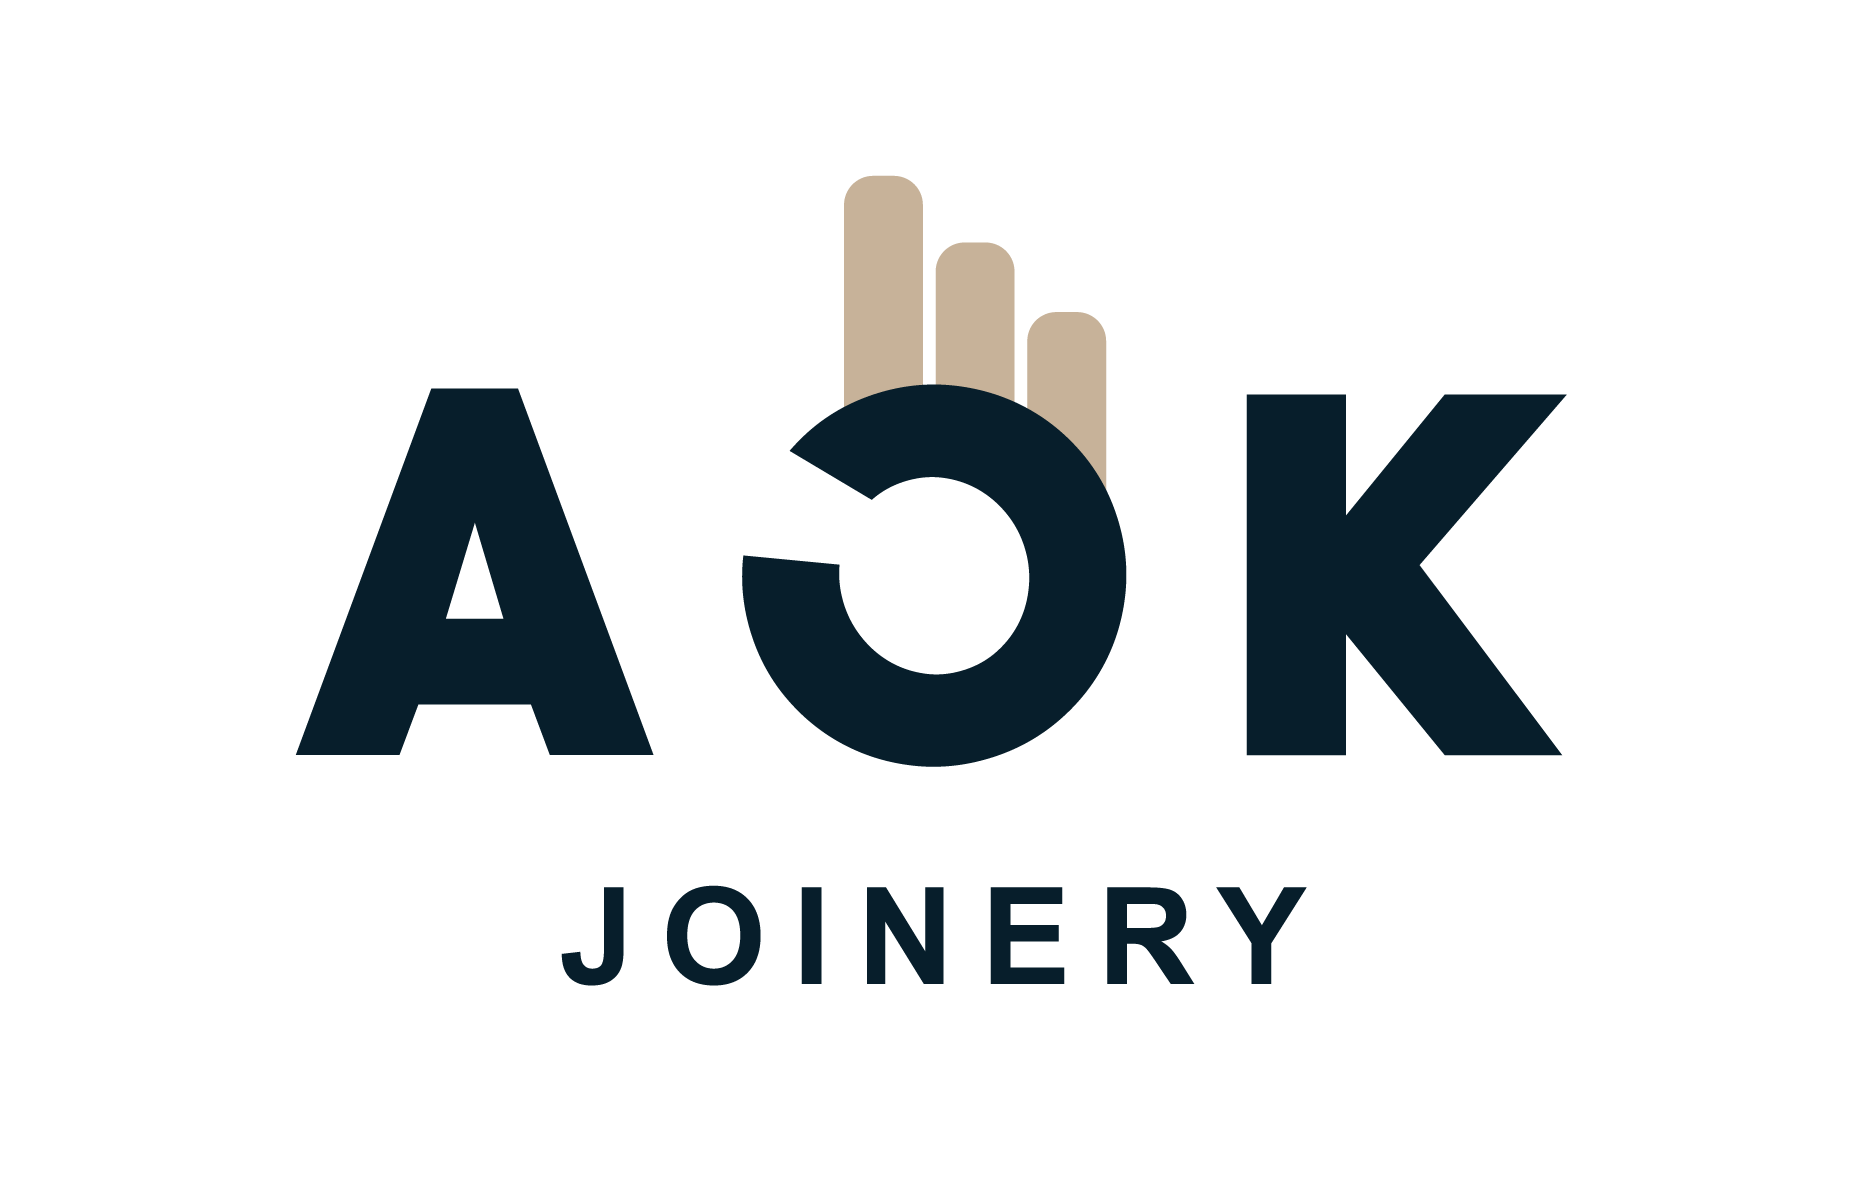 https://aokjoinery.com.au/wp-content/uploads/2018/12/logo.png